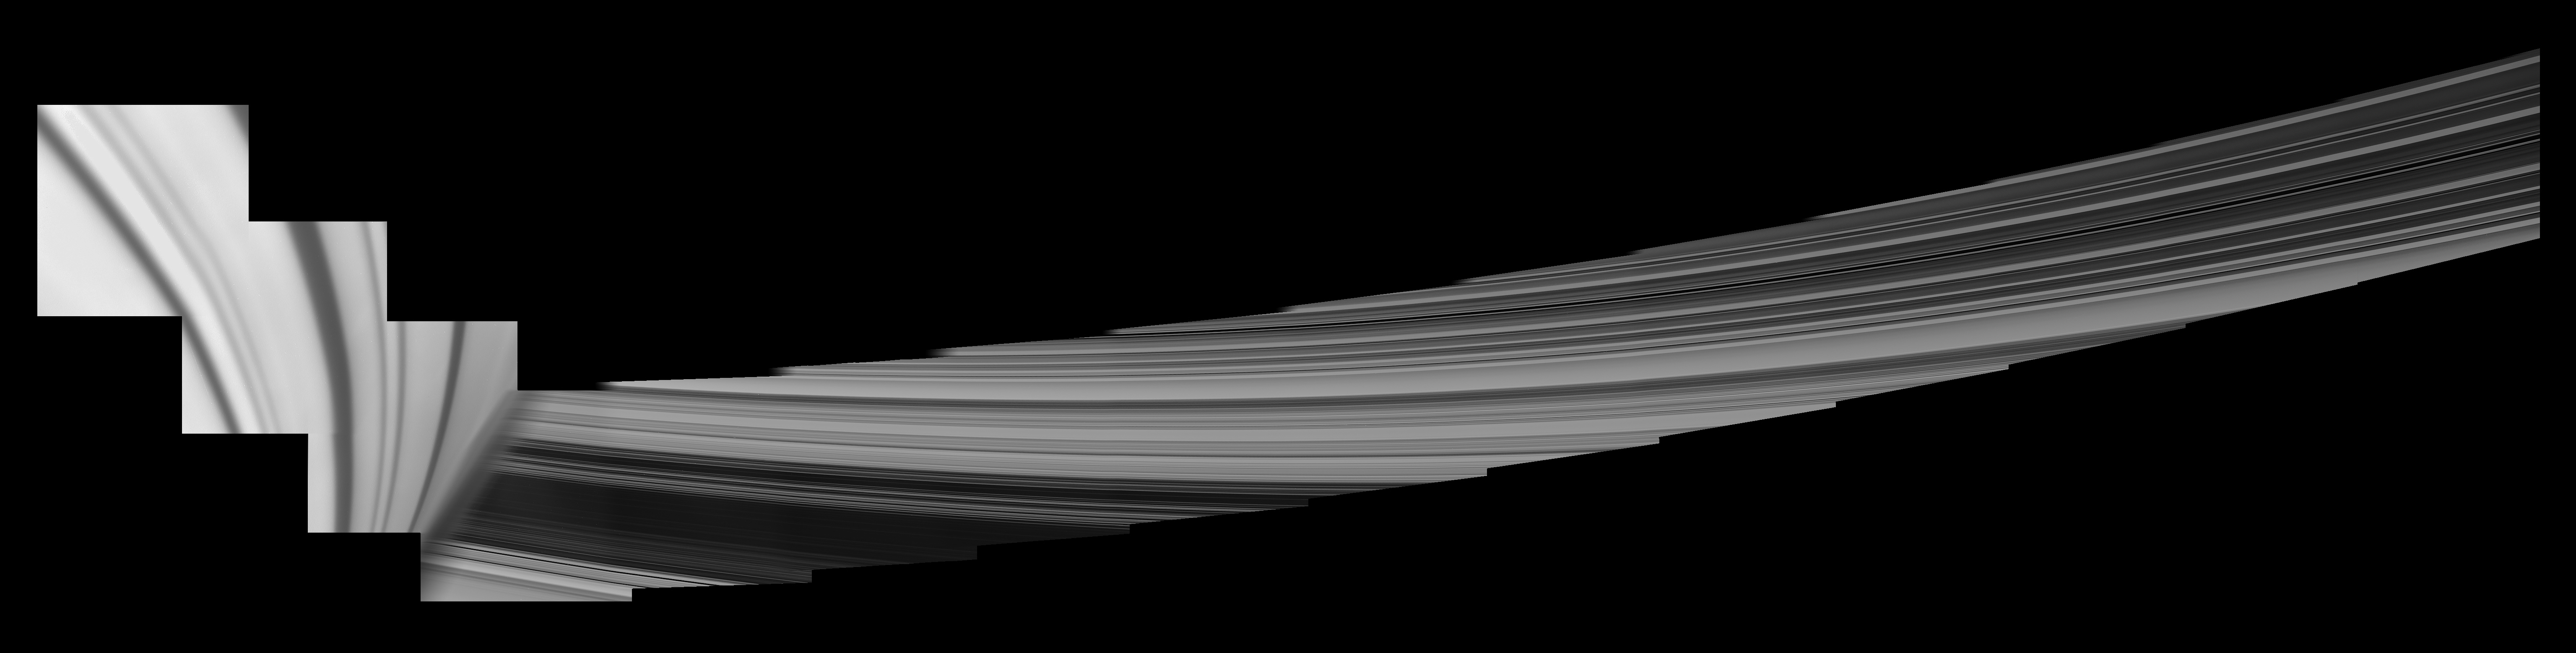 1567213992164-Cassini_Saturn_rings_PIA21897_FigB.jpg